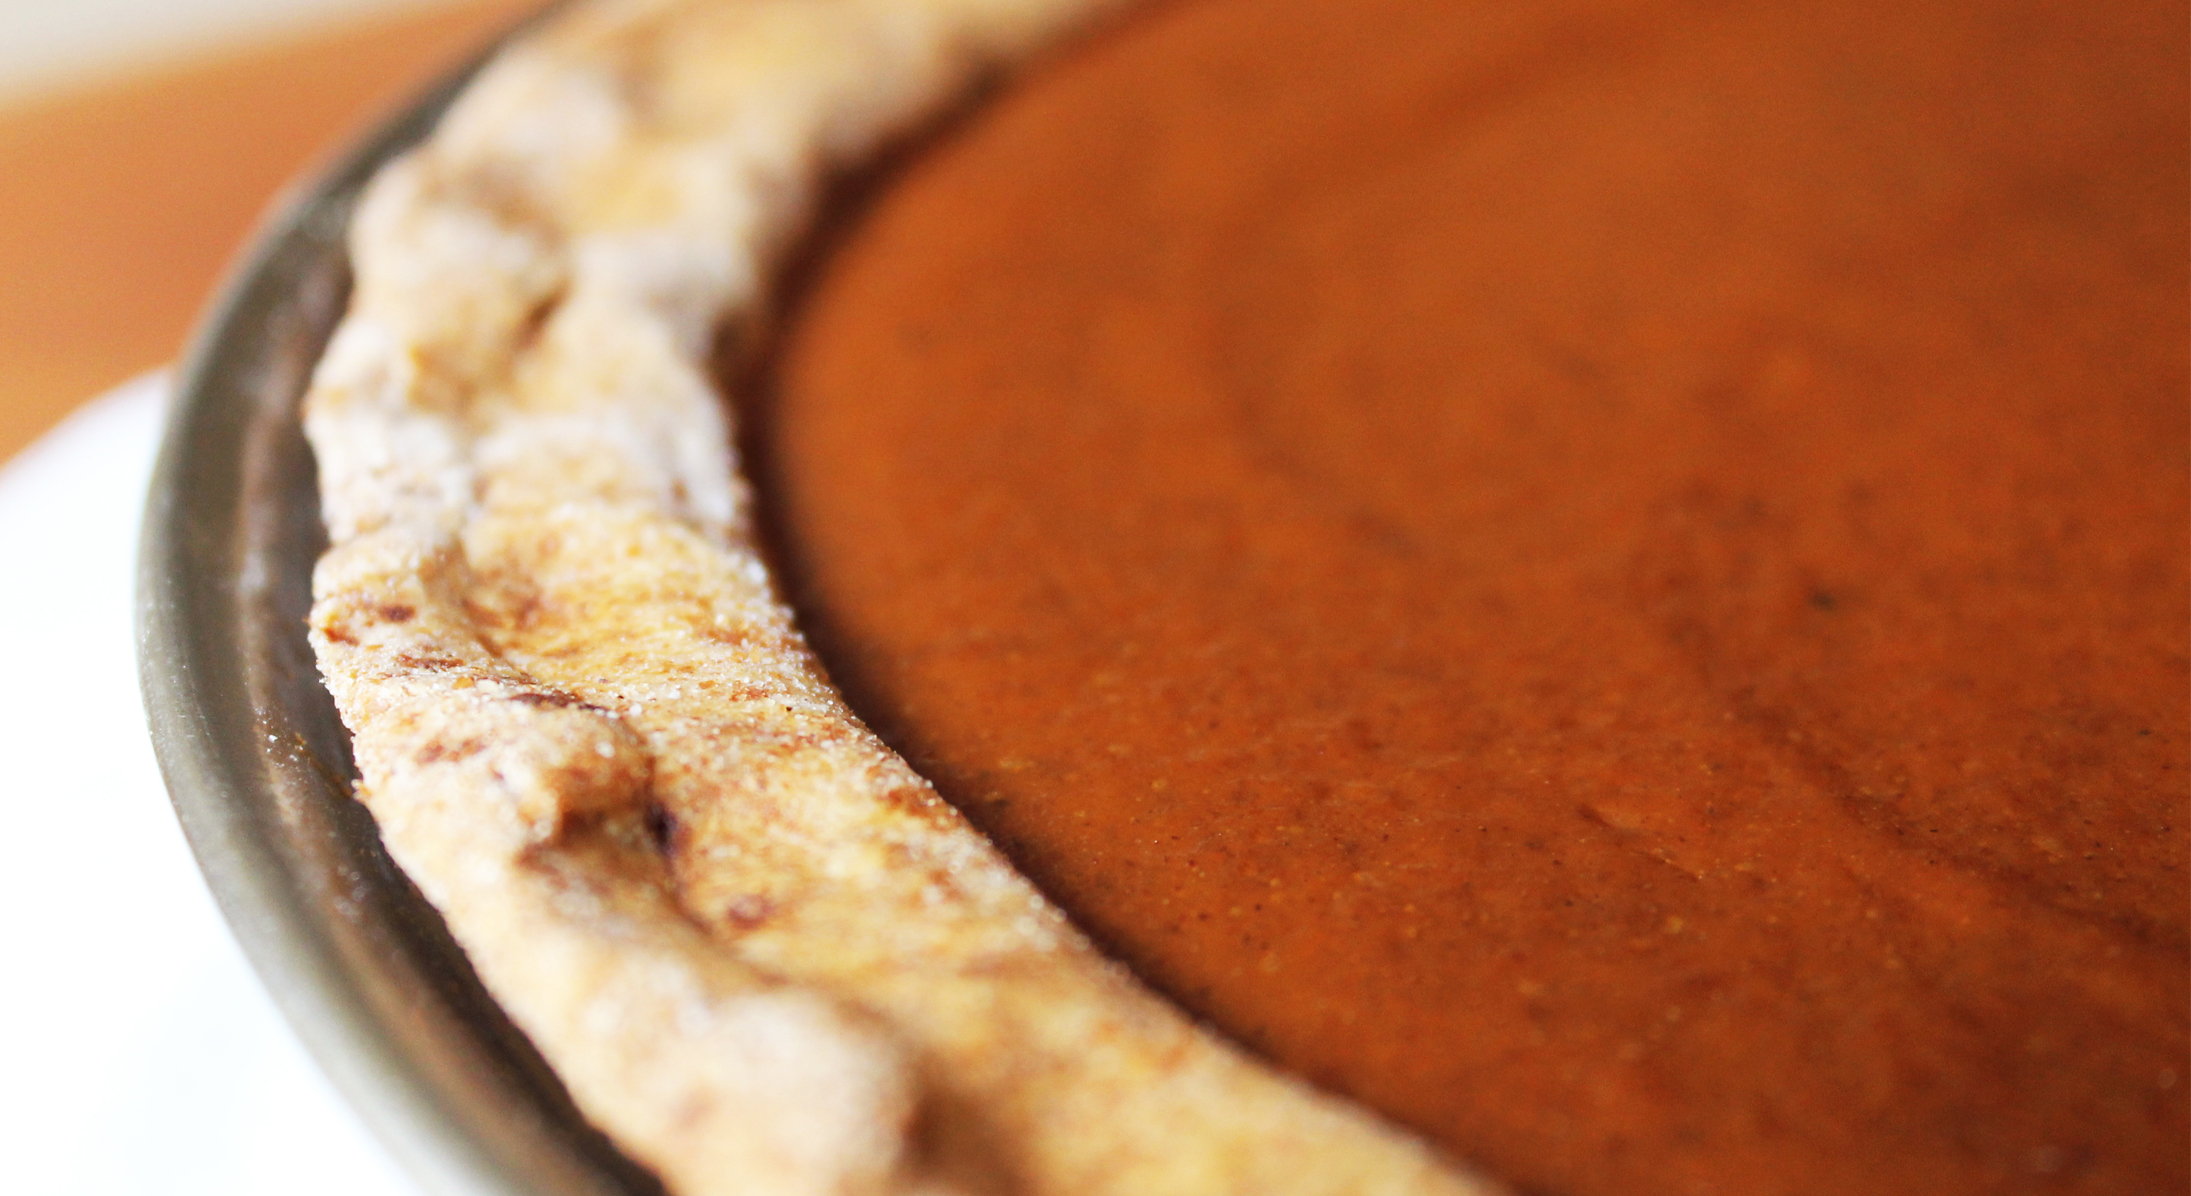 Shiloh Farms Apple Butter Pumpkin Pie with Sprouted Spelt Crust